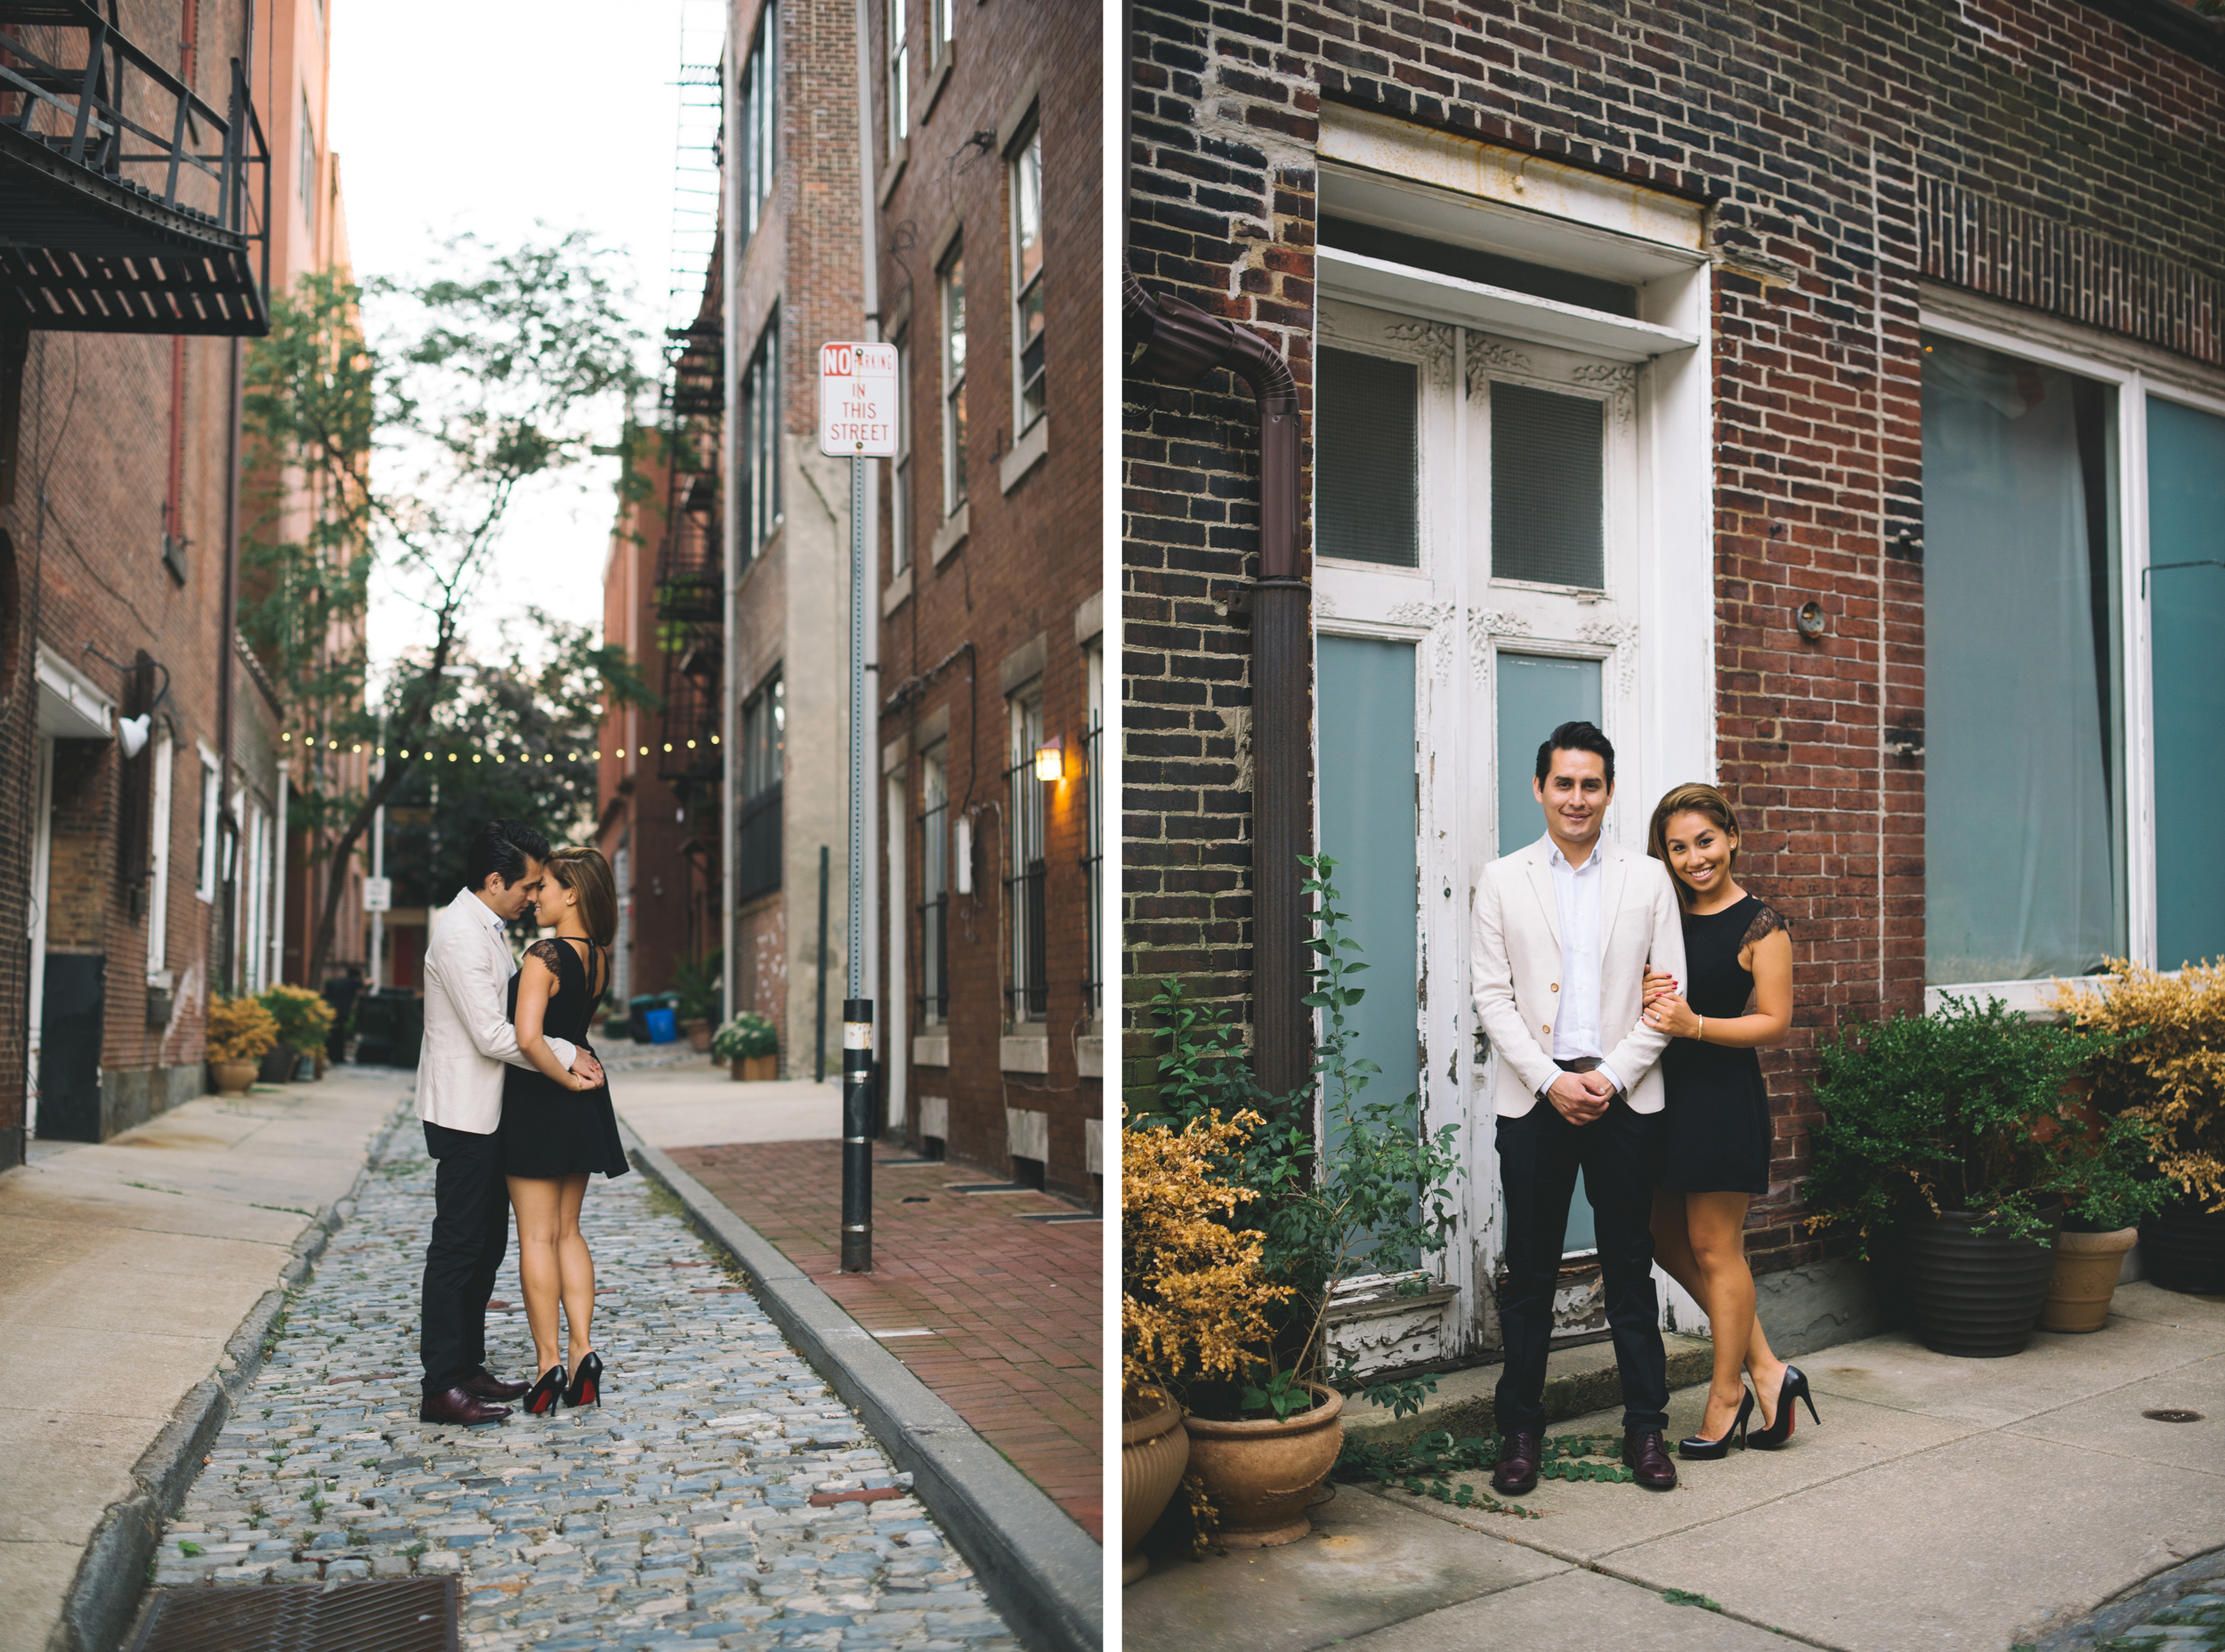 Old-City-Philadelphia-Engagement-Peaberry-Photography-Pennsylvania-Wedding-Photographer-002.jpg